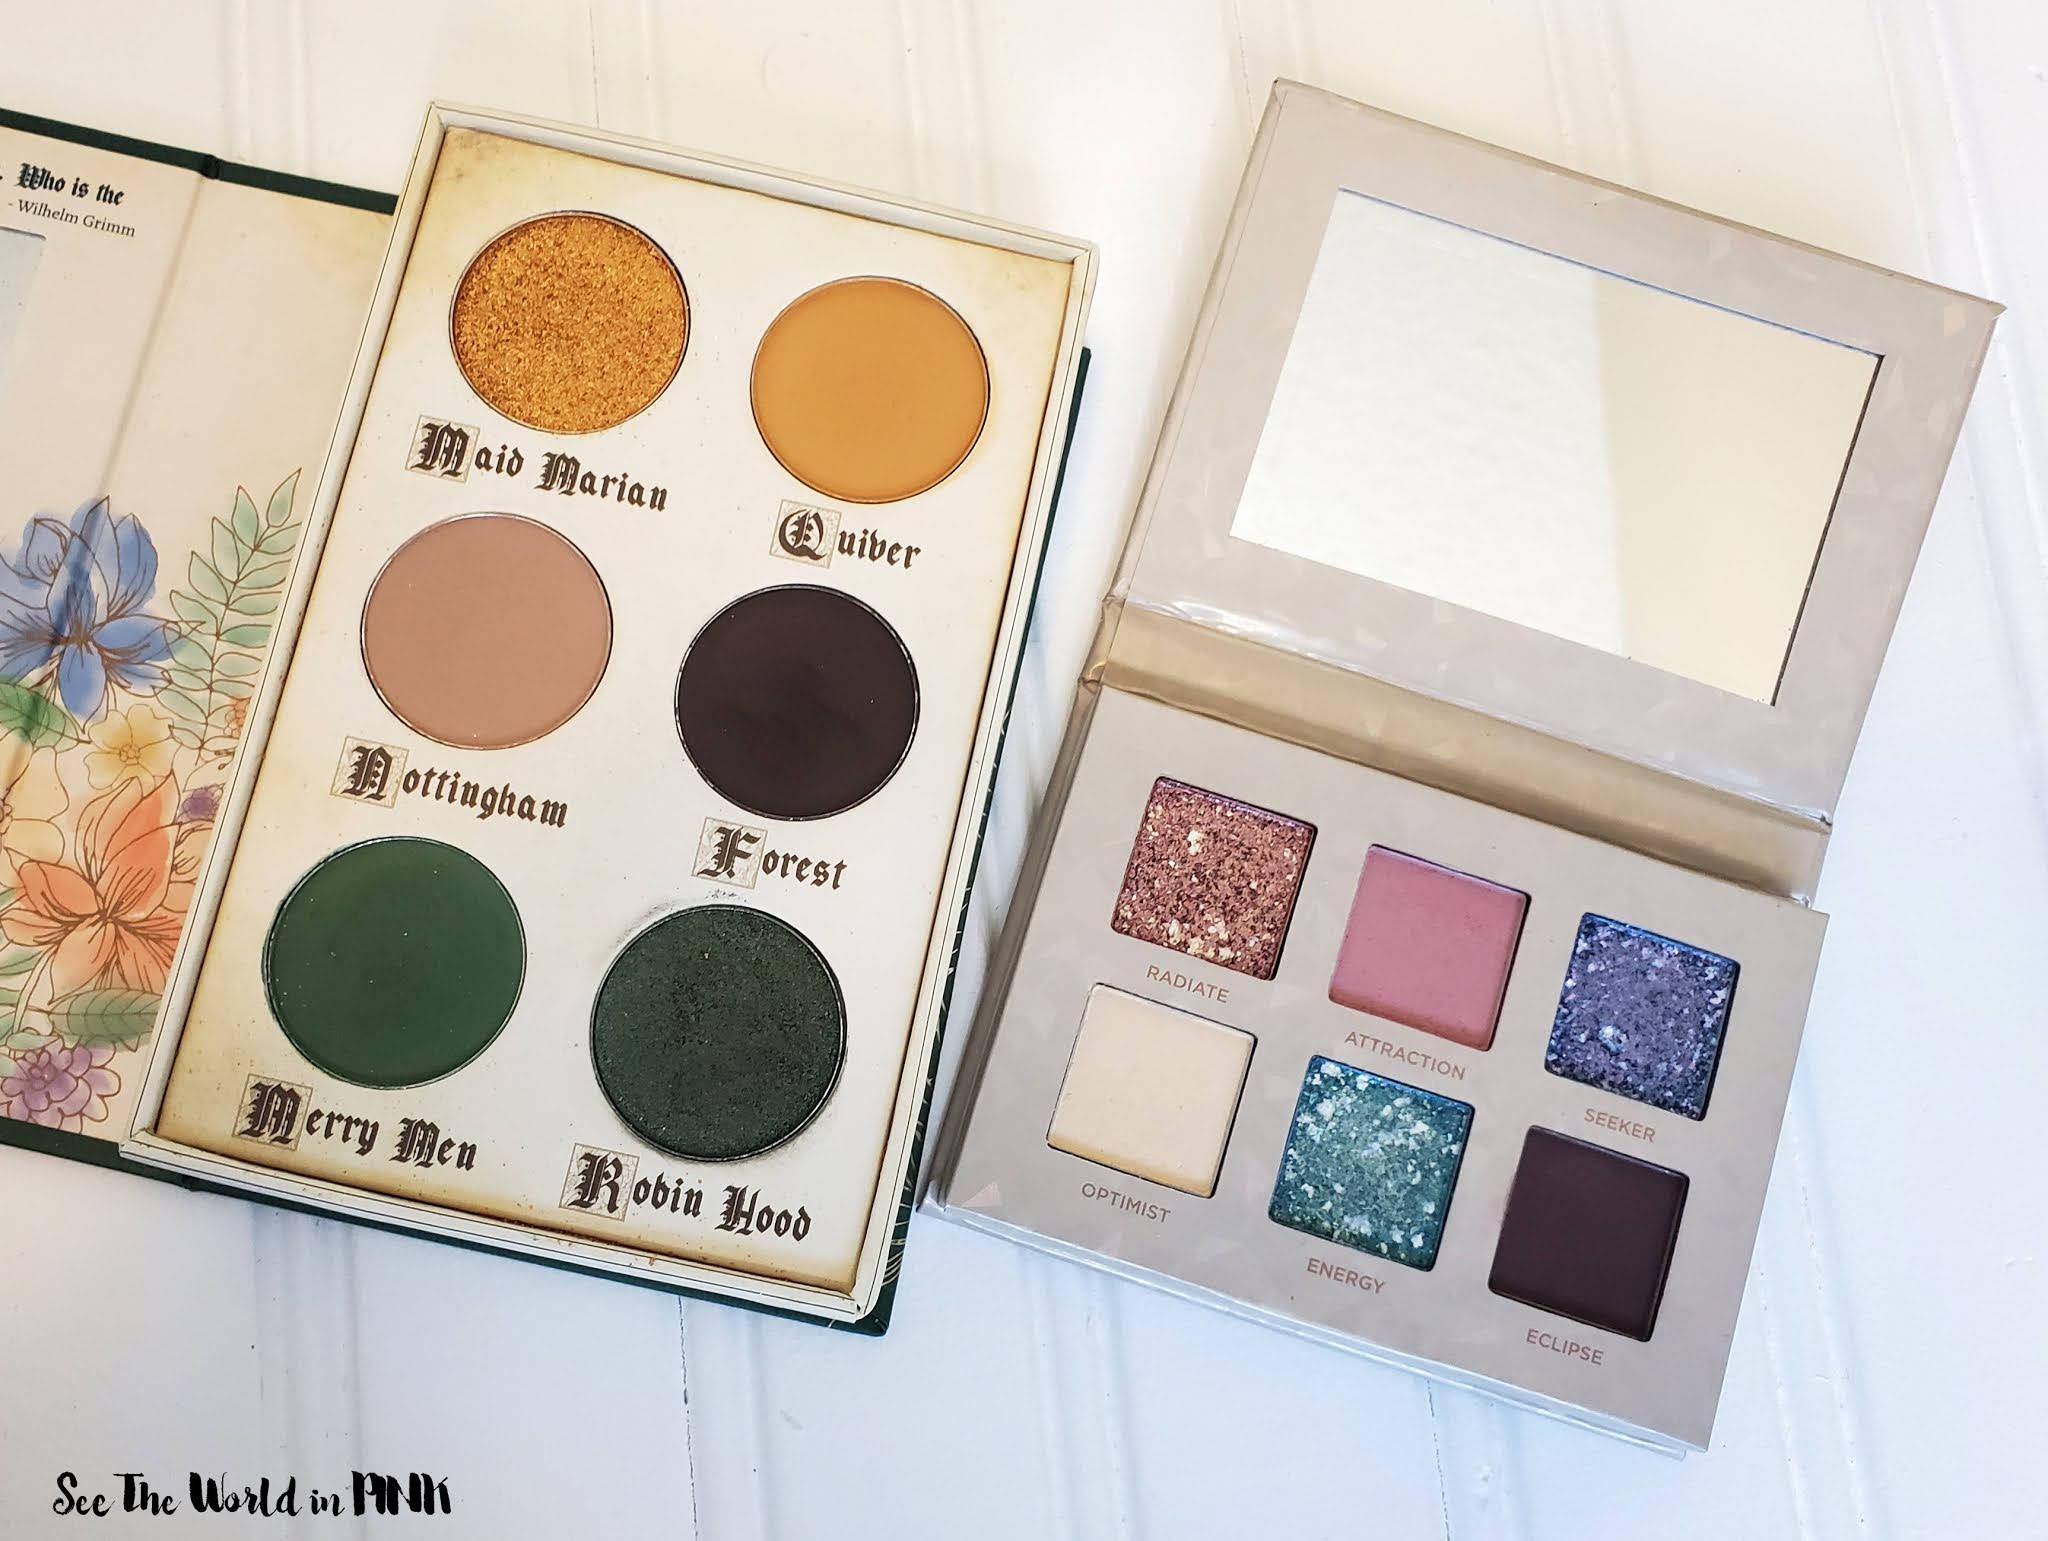 Ranking All The Eyeshadow Palettes I Tried In 2020!